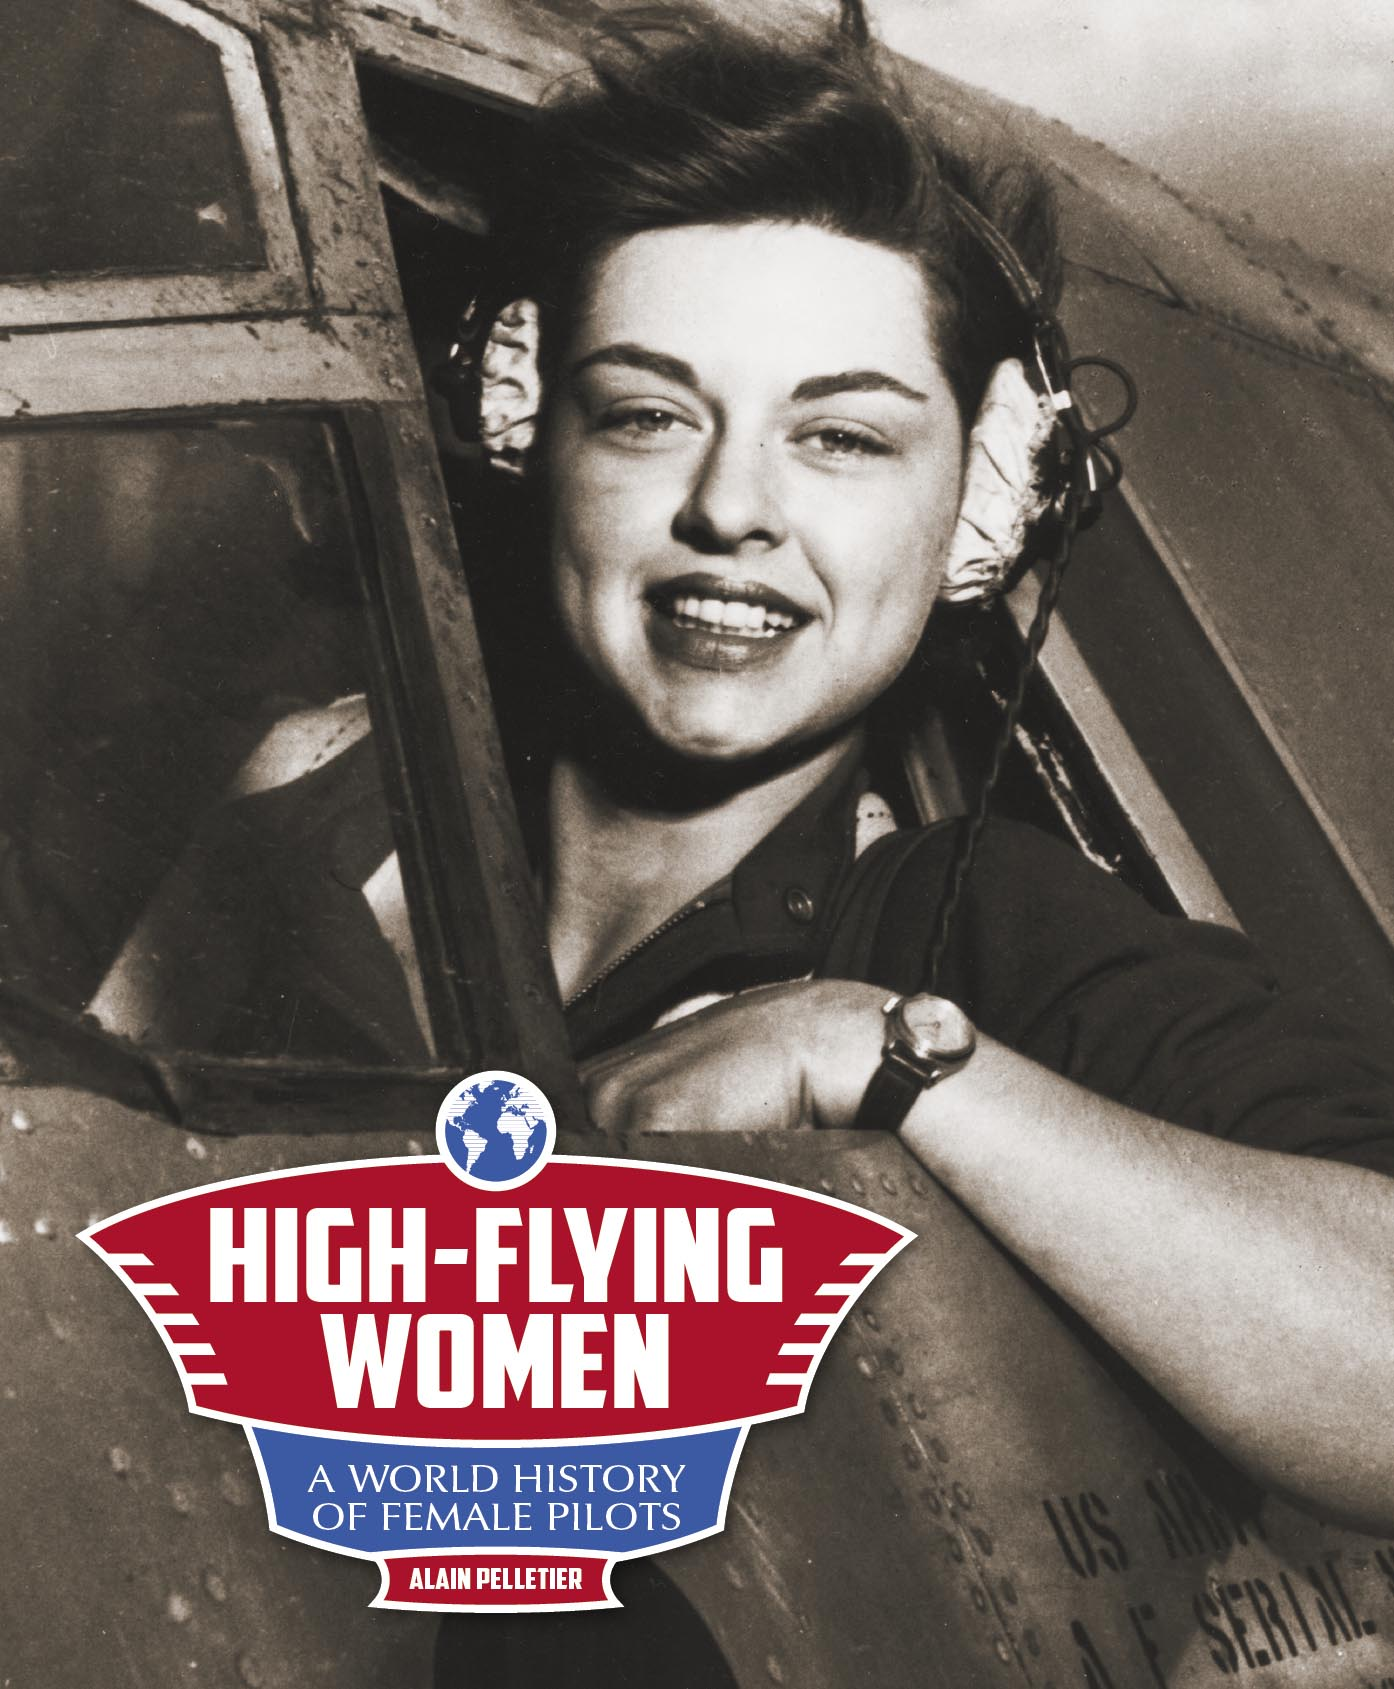 High-Flying Women: A world history of female pilots